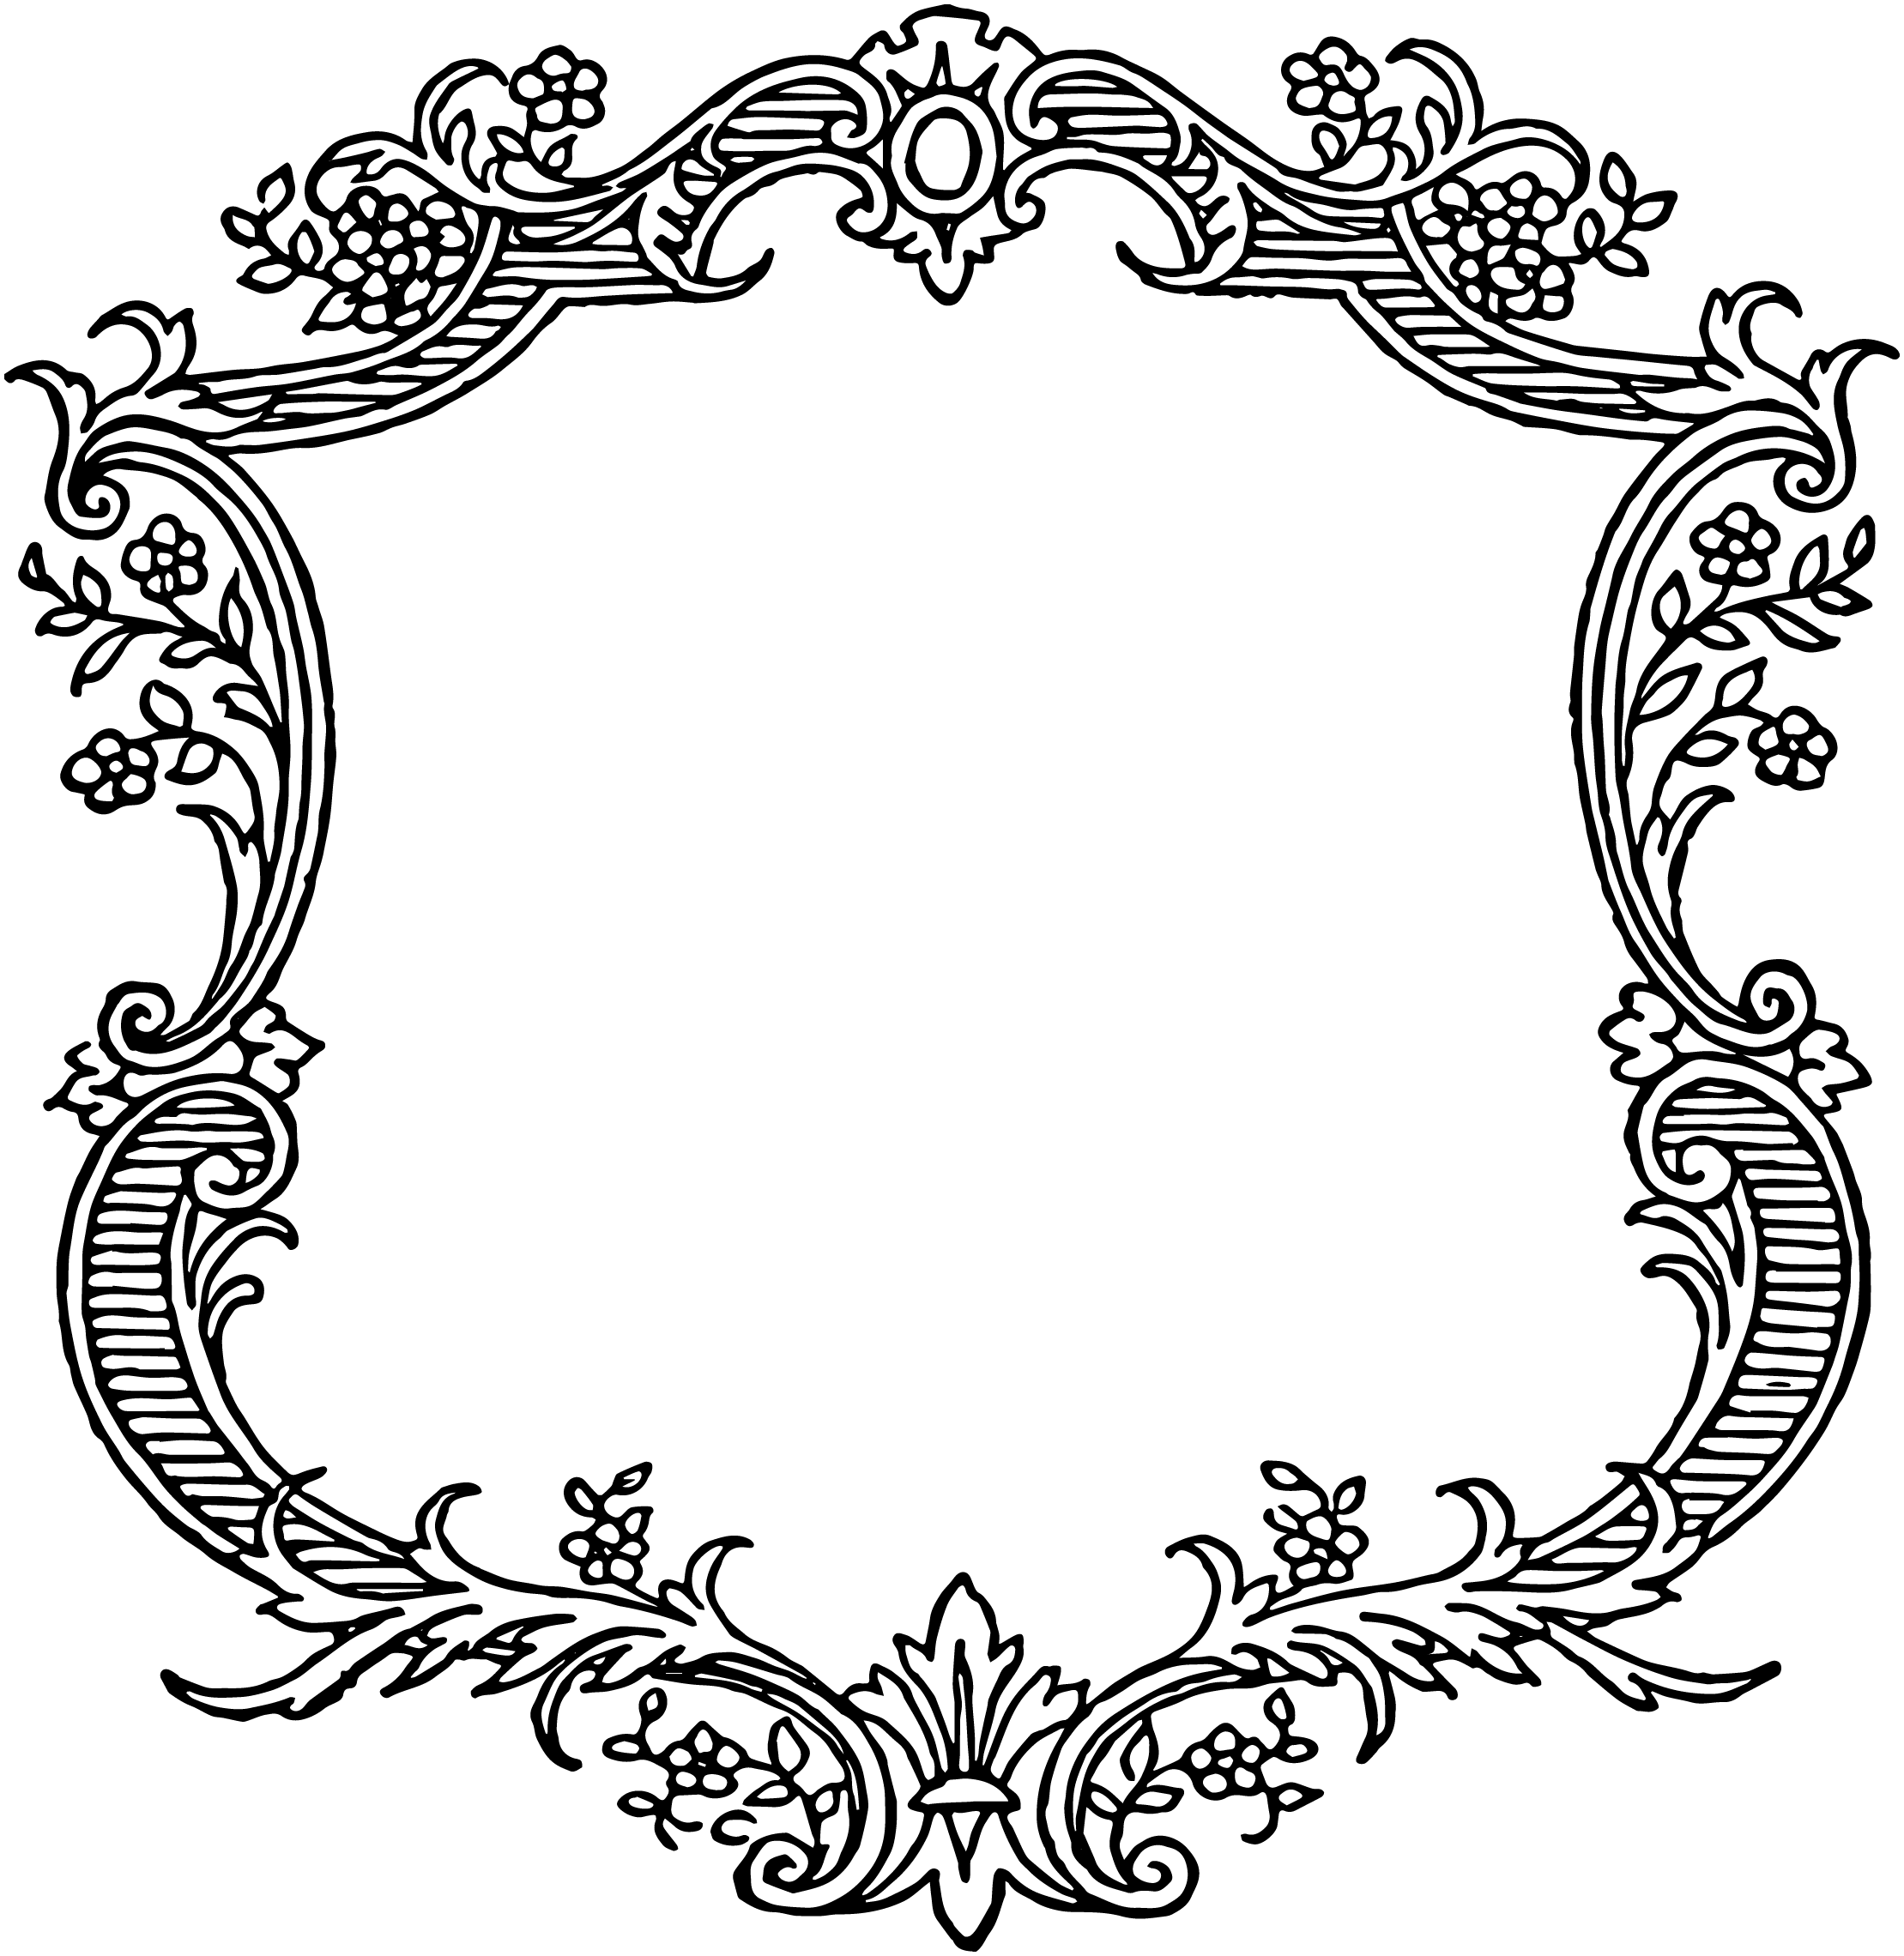 Poetry clipart scroll. Ornament vector png free